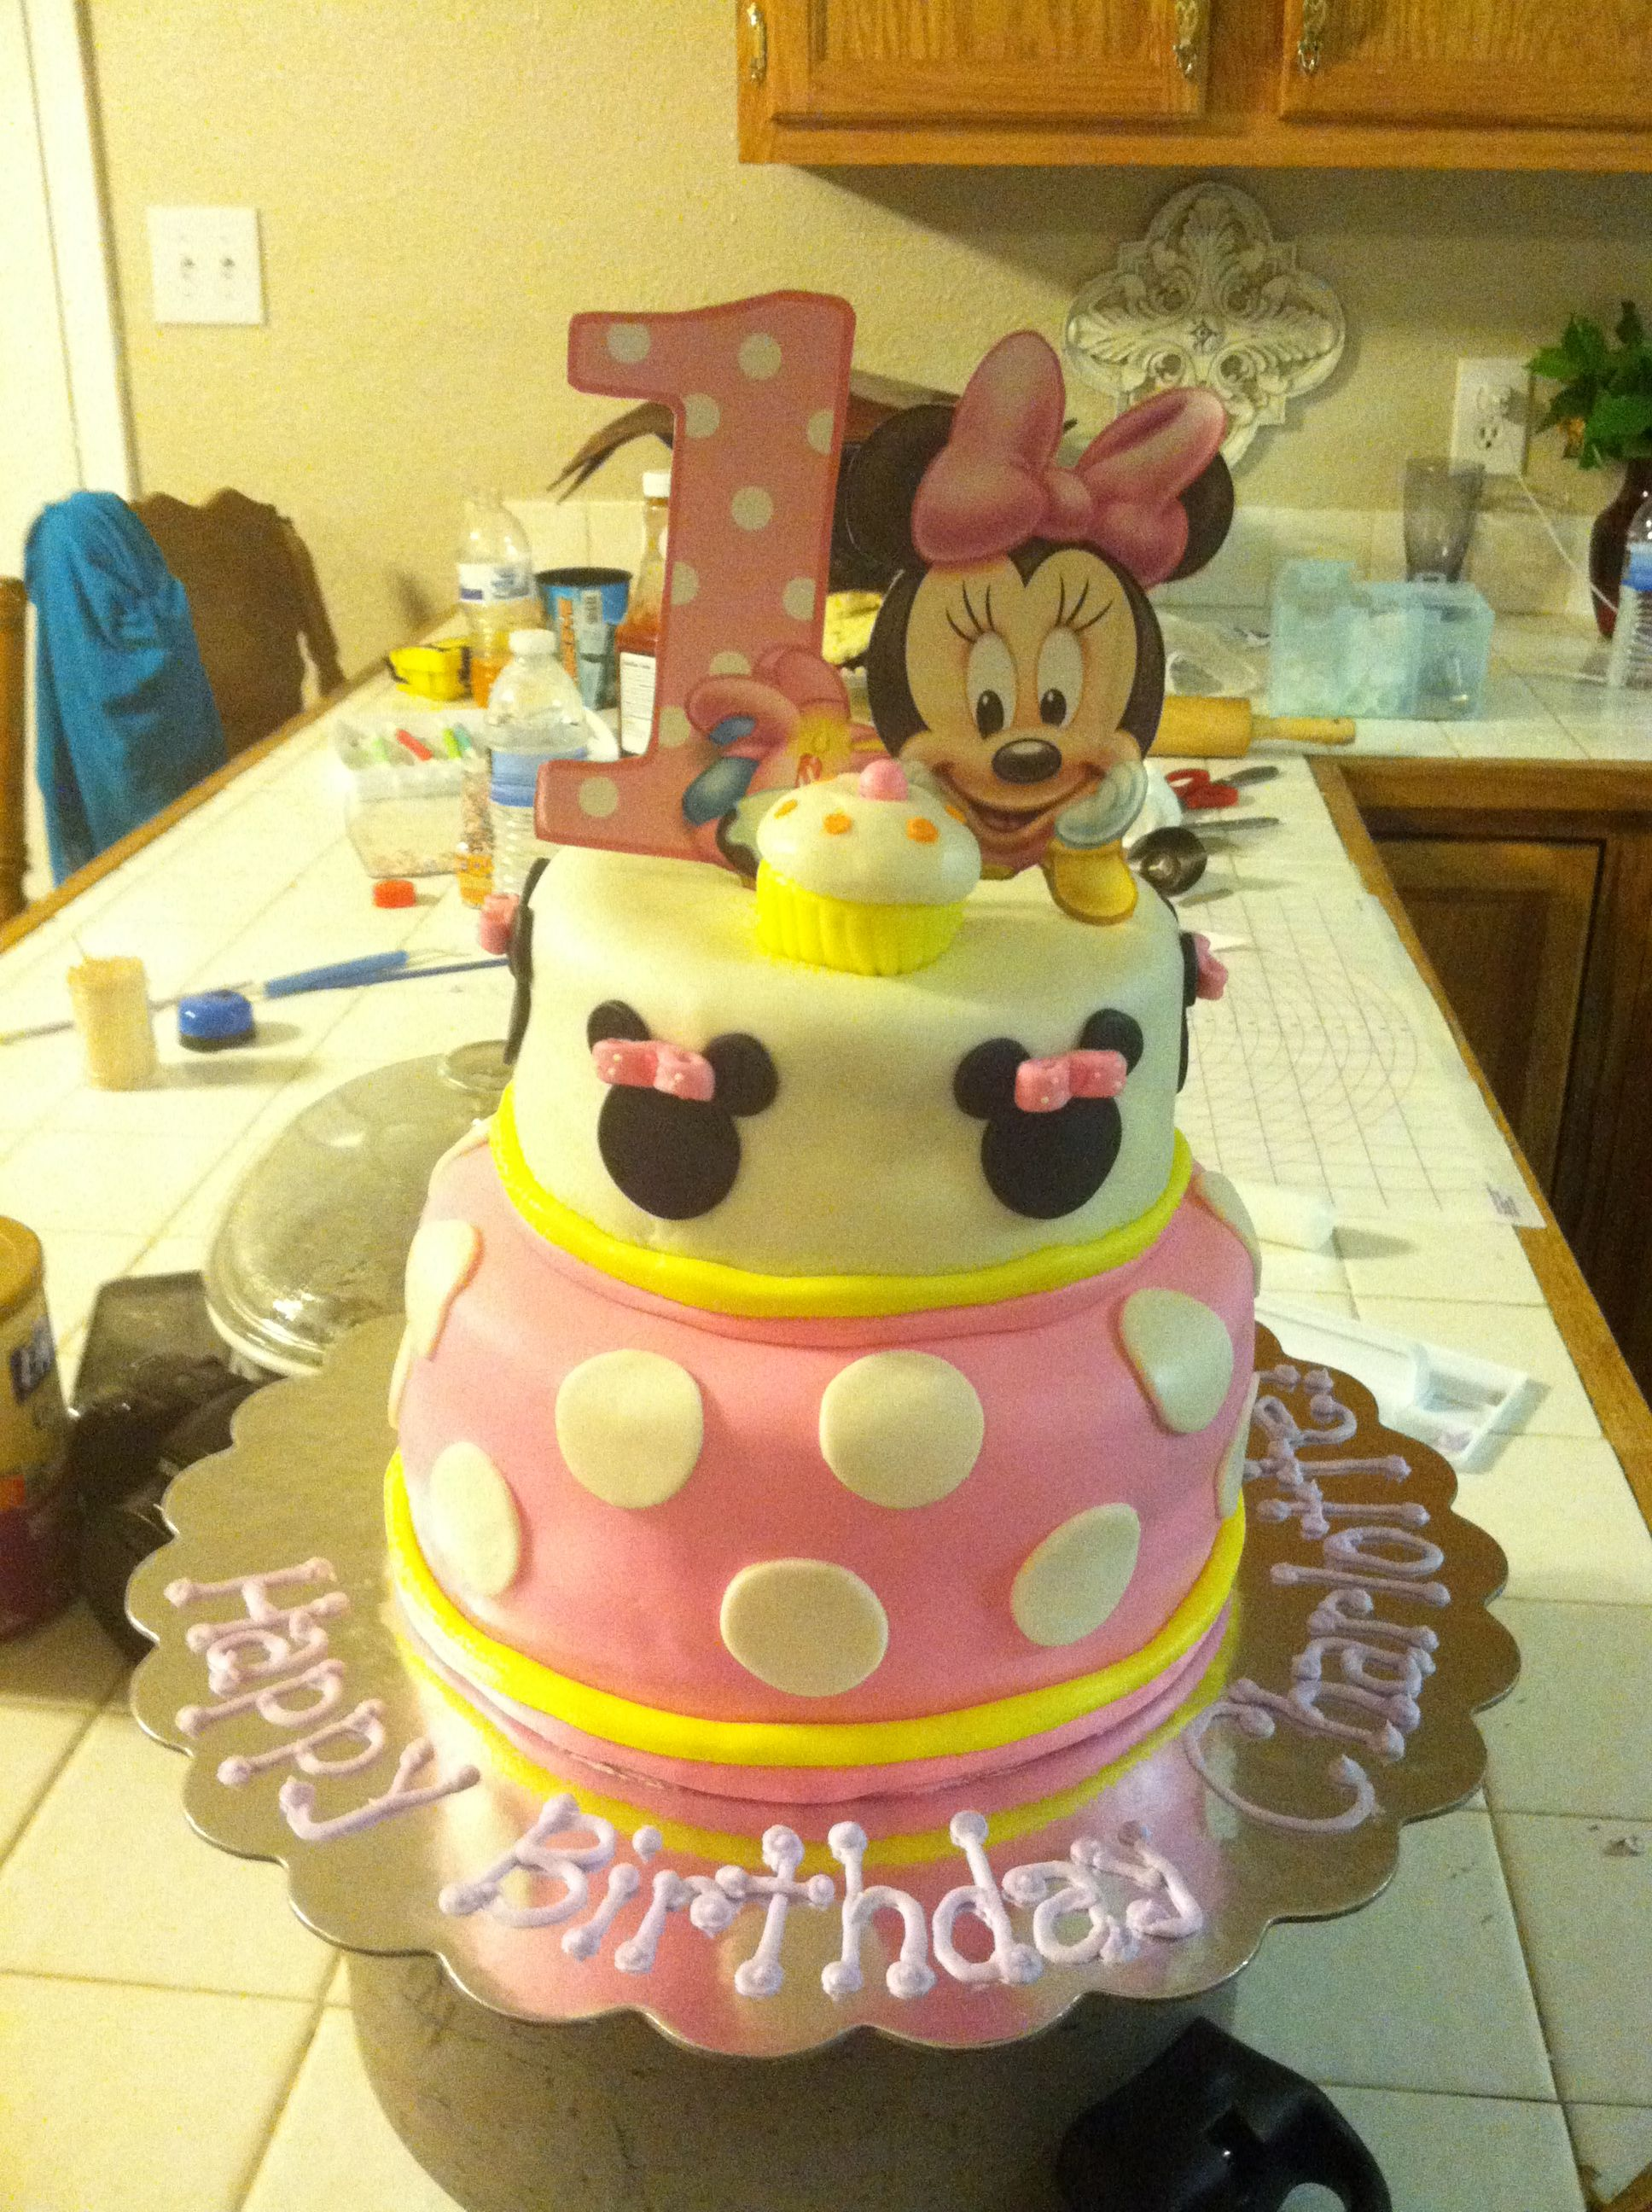 Wondrous Baby Minnie Mouse 1St Birthday Cake With Images Birthday Birthday Cards Printable Riciscafe Filternl